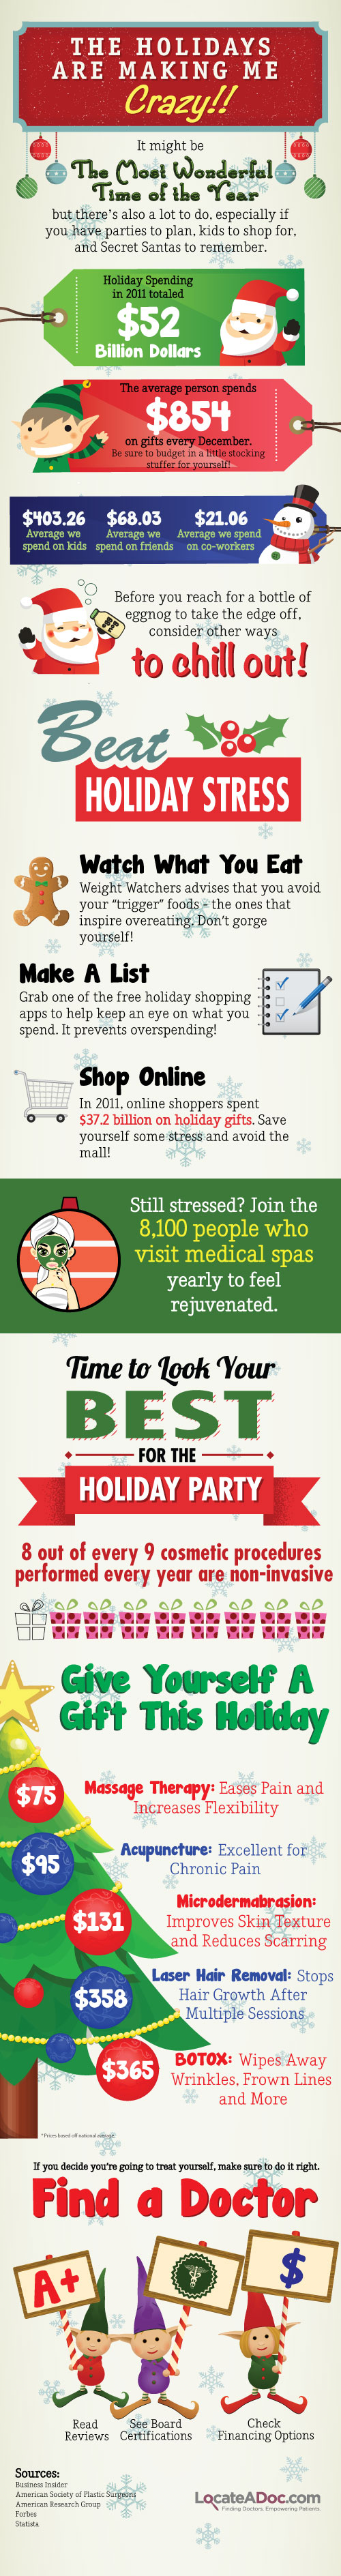 holiday-stress-medical-spa-infographic